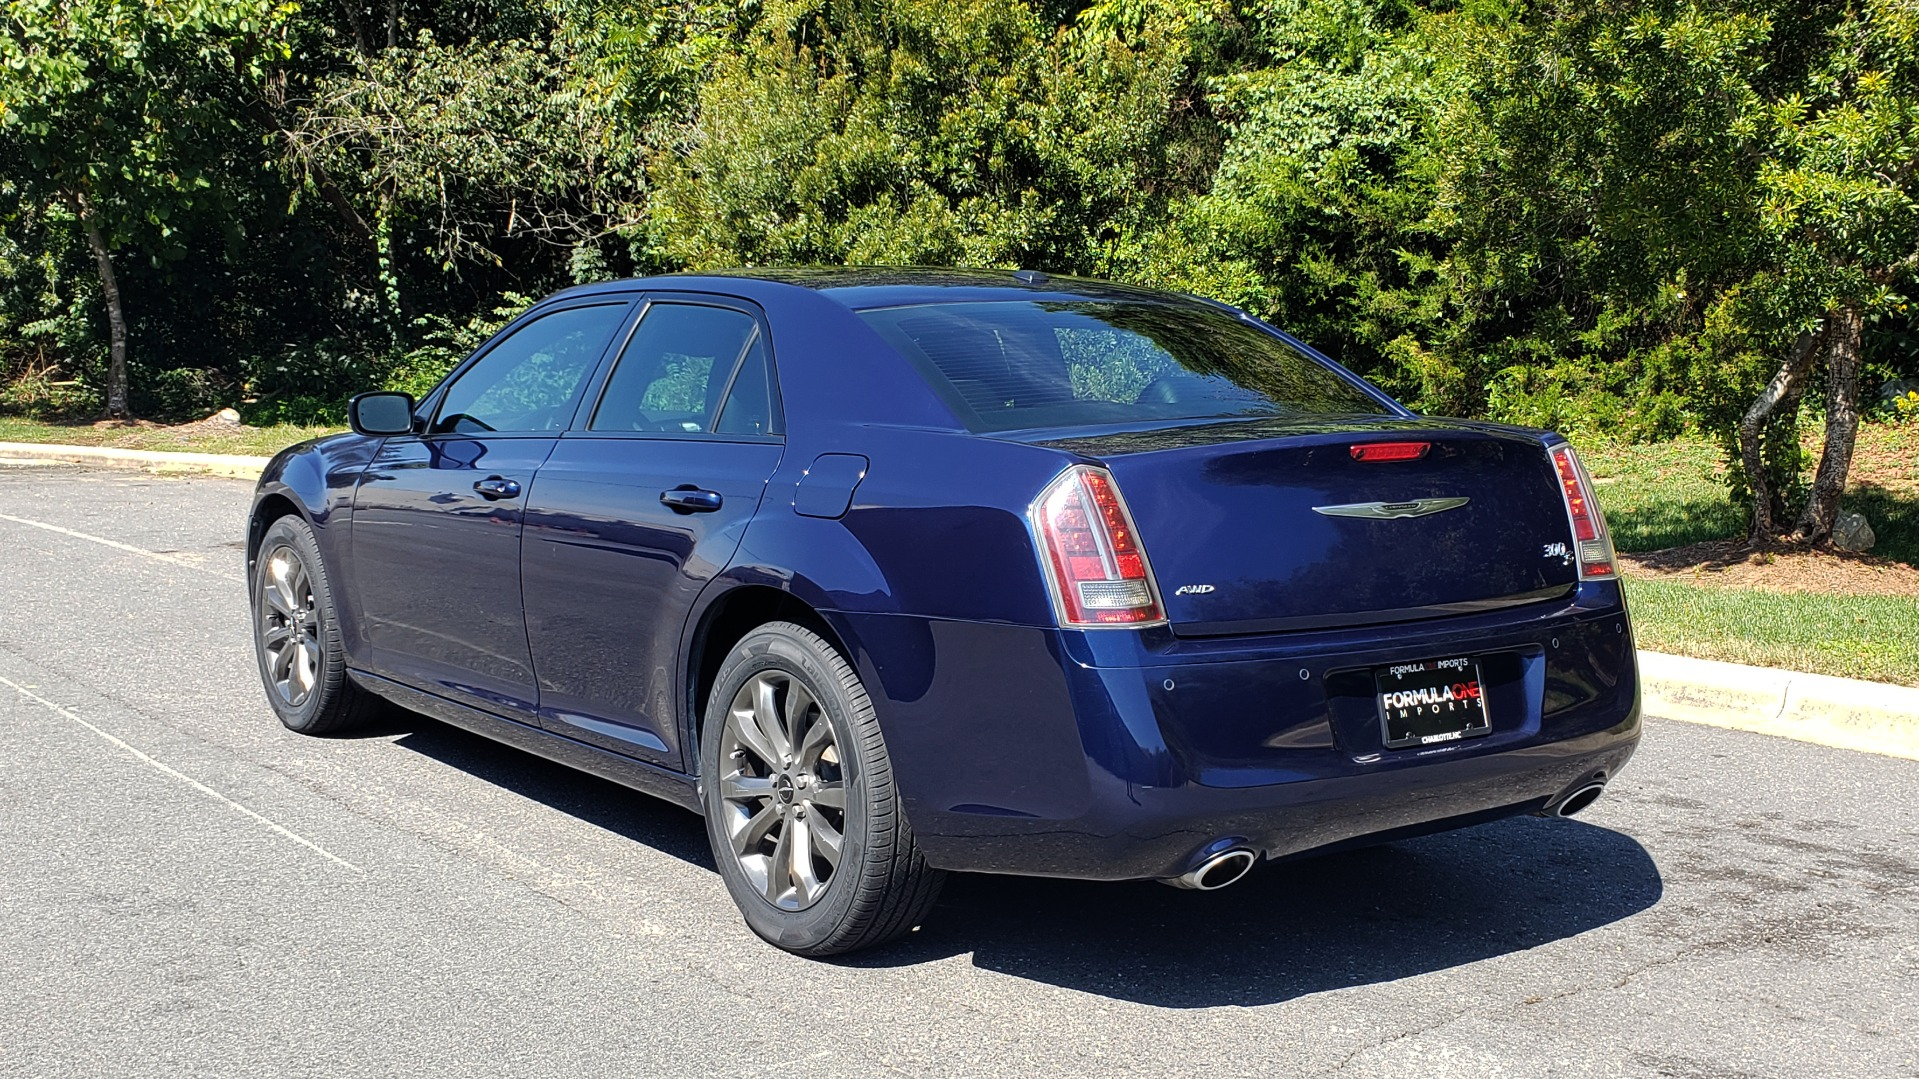 Used 2014 Chrysler 300 S AWD / SAFETY TEC / BLIND SPOT / LIGHT GRP / LUXURY GRP for sale $13,995 at Formula Imports in Charlotte NC 28227 5